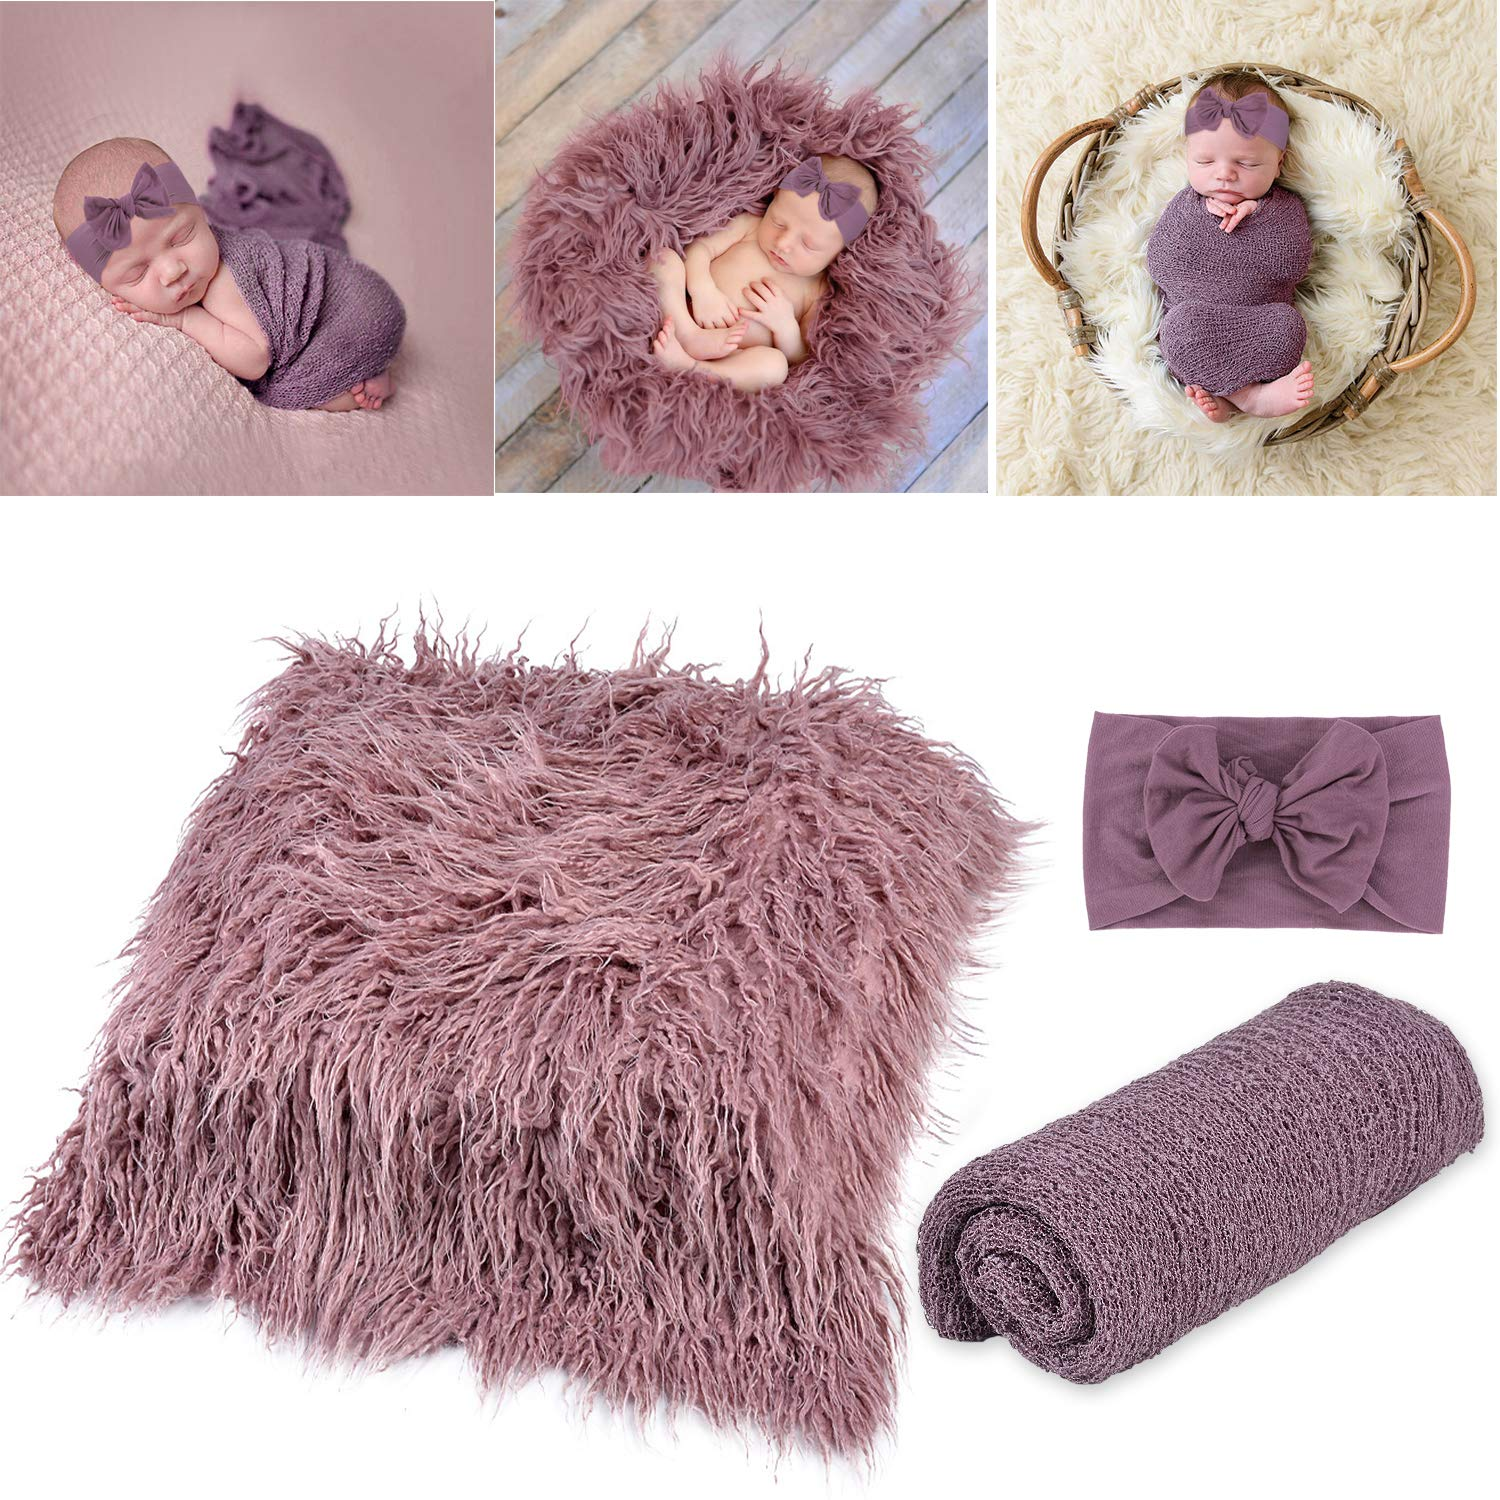 Newborn Baby Photography Props,Aniwon 3Pcs DIY Toddler Photo Blankets Wrap Outfits and Headband Long Ripple Wraps Prop Swaddle Wrap Photography Mat for Boys and Girls (Dark Purple)